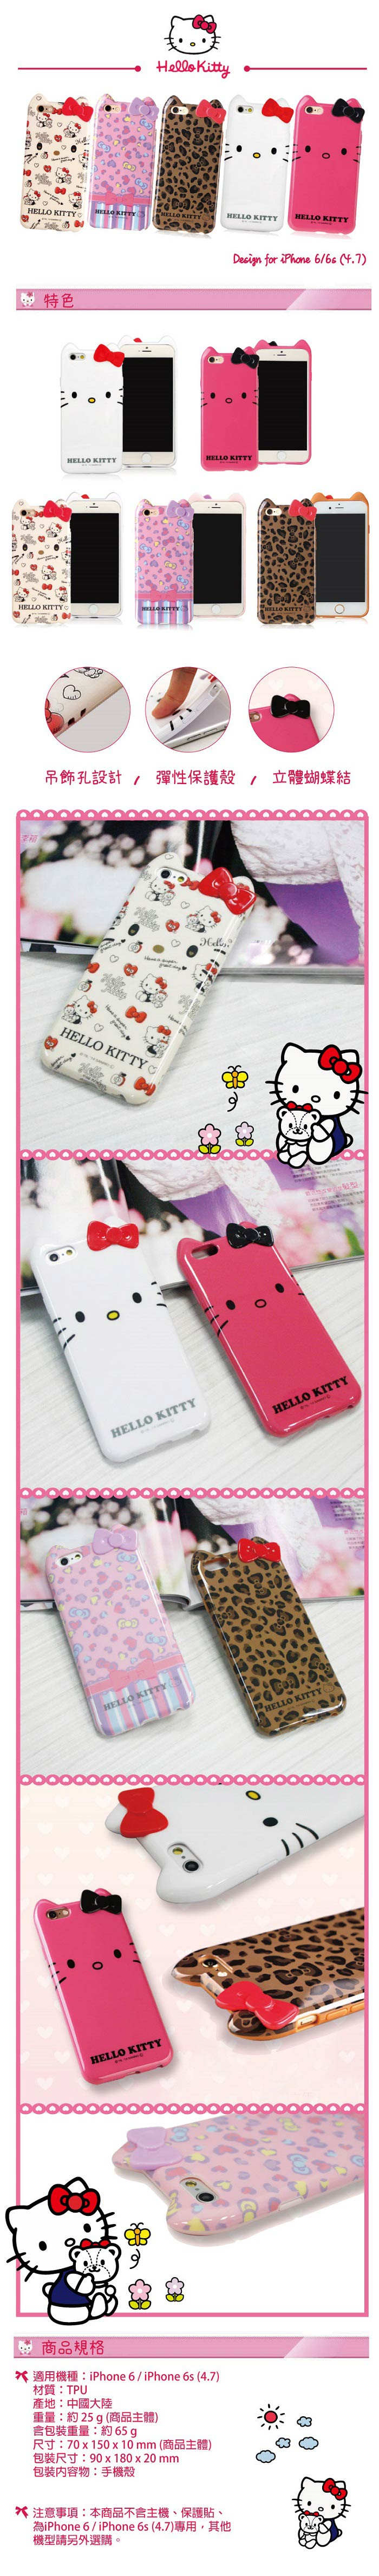 GD iPhone 6 / iPhone 6s Kitty���齹�����O�@�M(�g���)-�ӫ~²����1